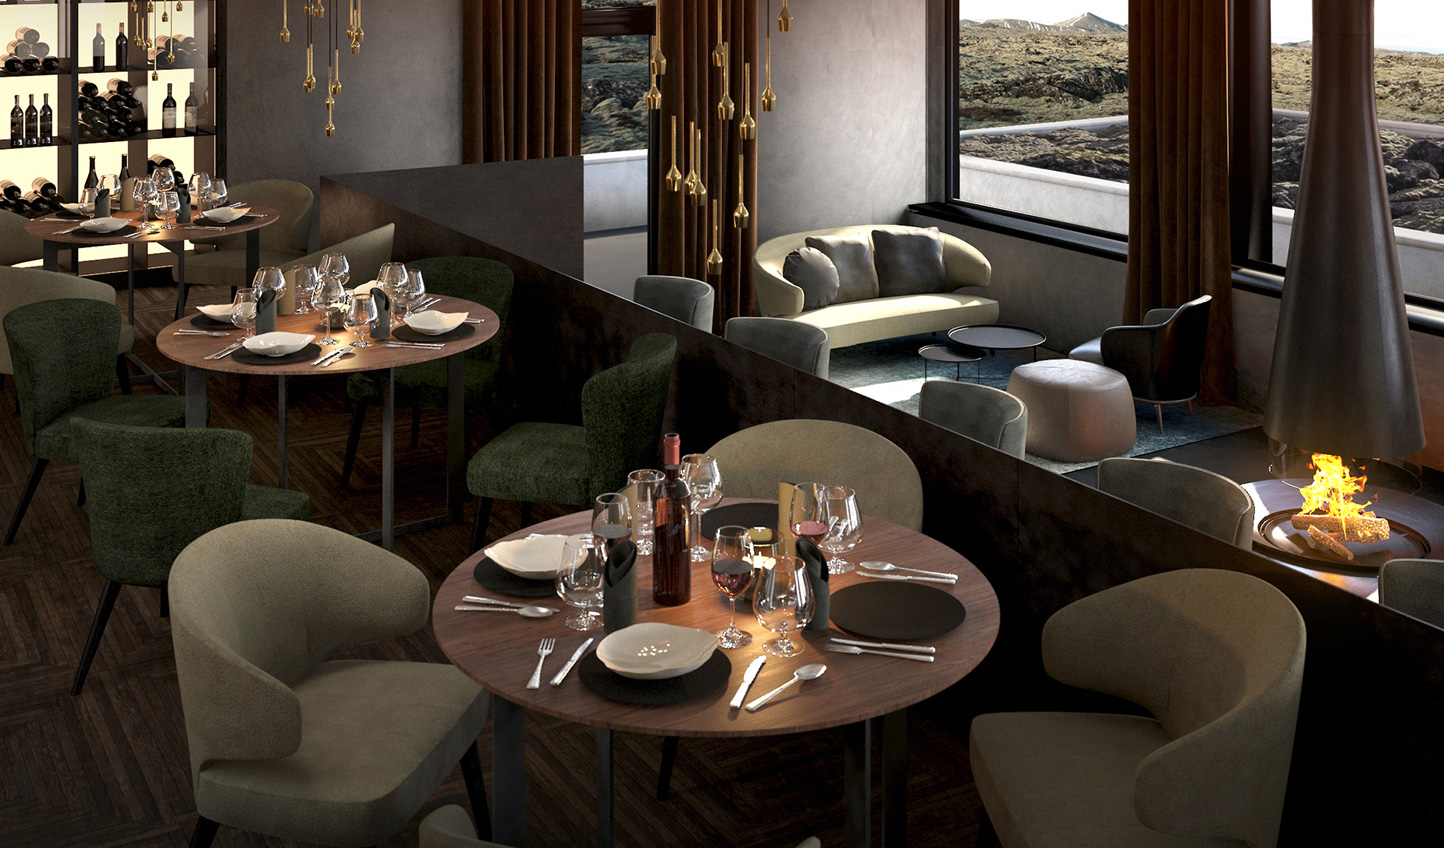 Take a journey through Icelandic cuisine at Moss Restaurant